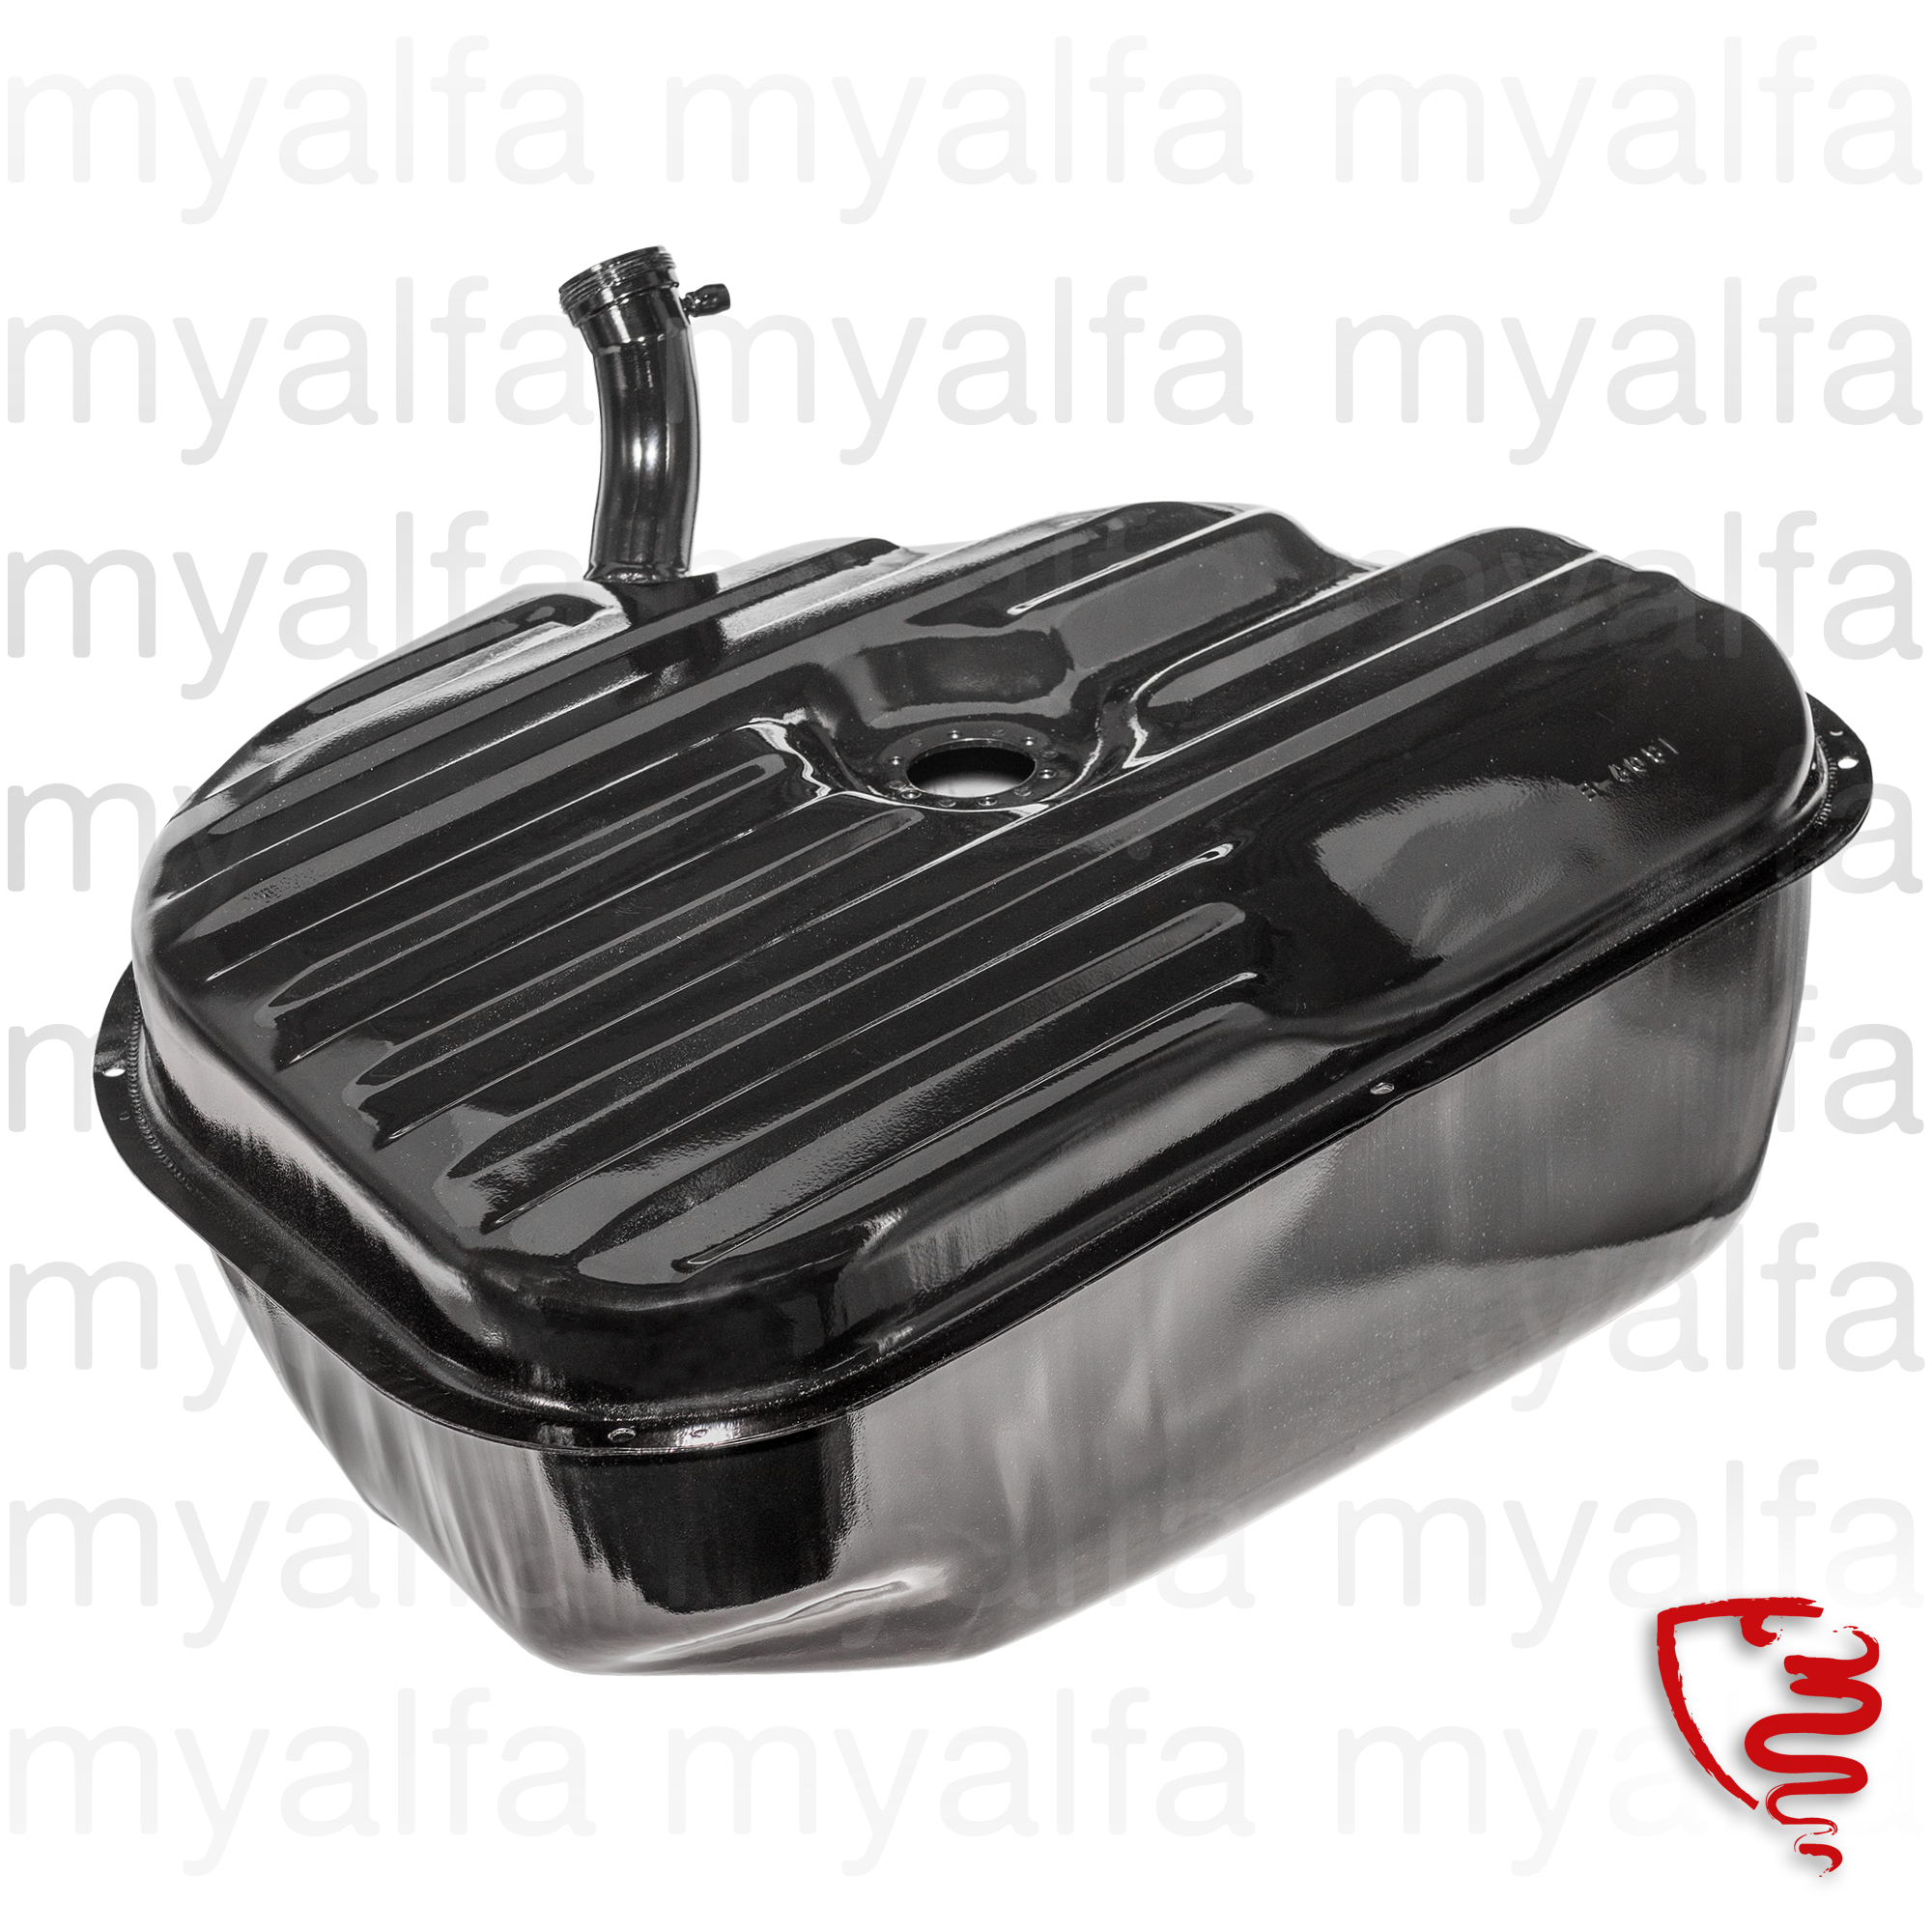 Gasoline tank GT 2000 for 105/115, Coupe, 2000, Fuel system, Fuel Tank